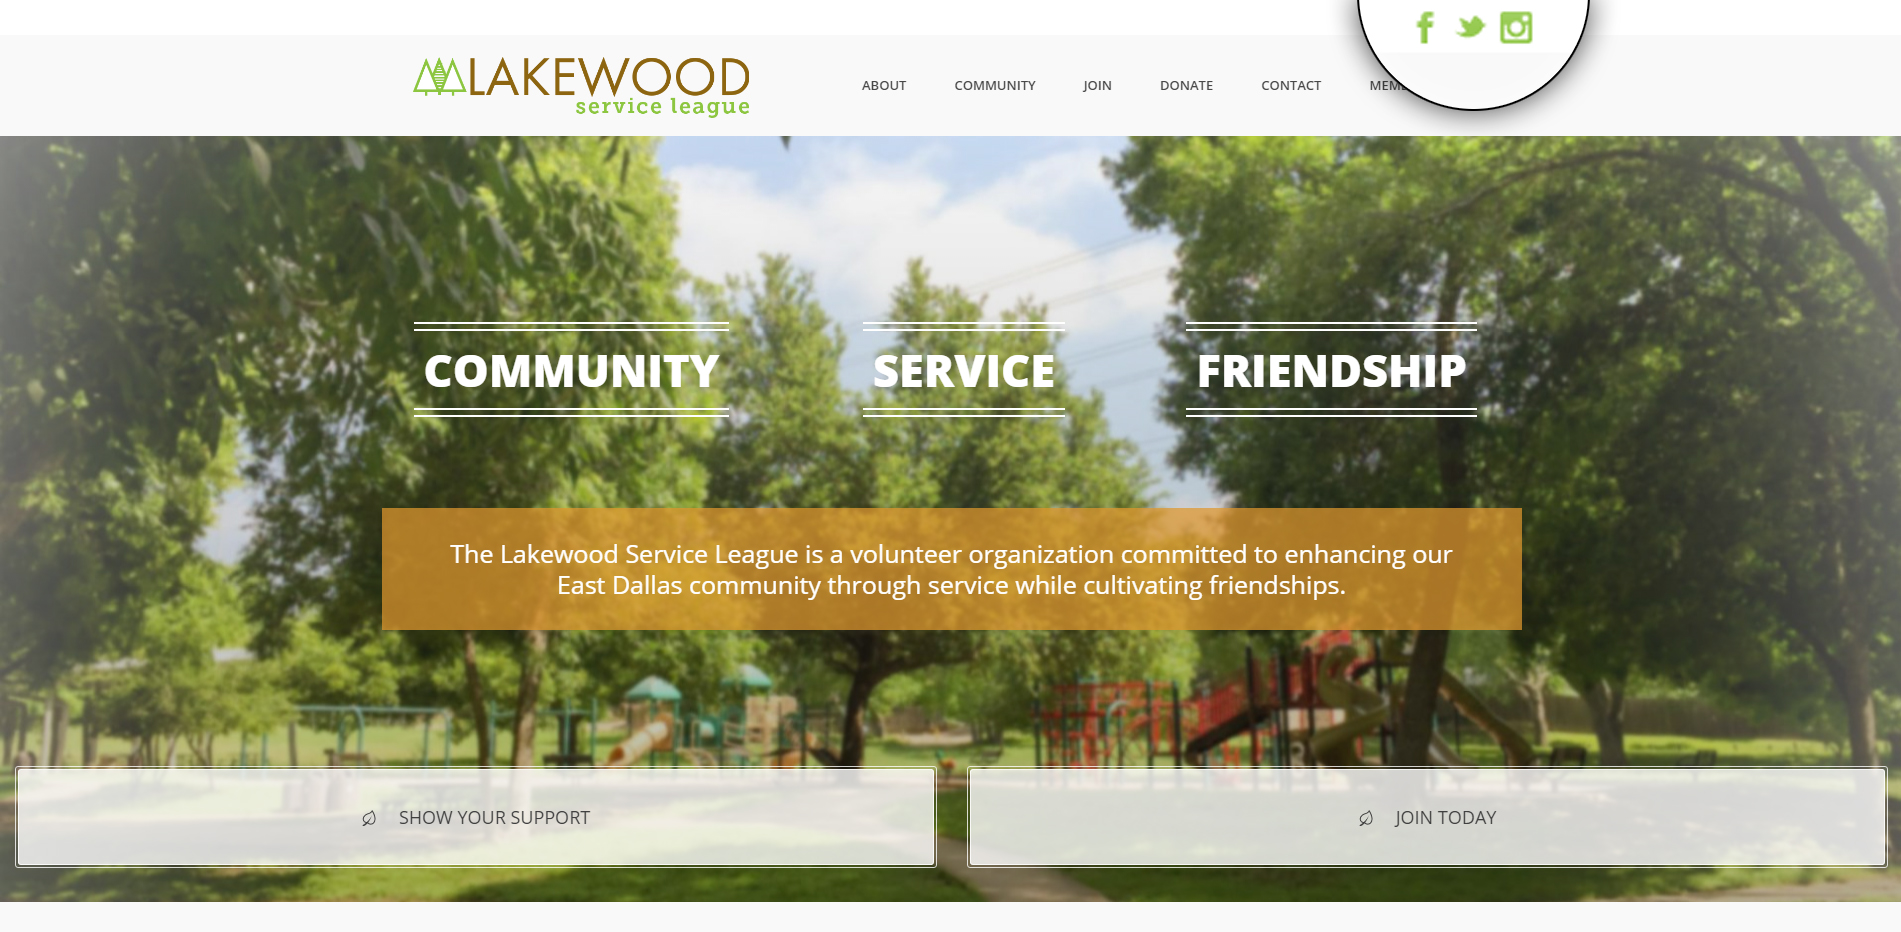 Lakewood Service League has included social sharing buttons in the very top right corner of their page. Notice how they've featured them in a bright color so that users can easily spot them and share Lakewood's content with their networks.